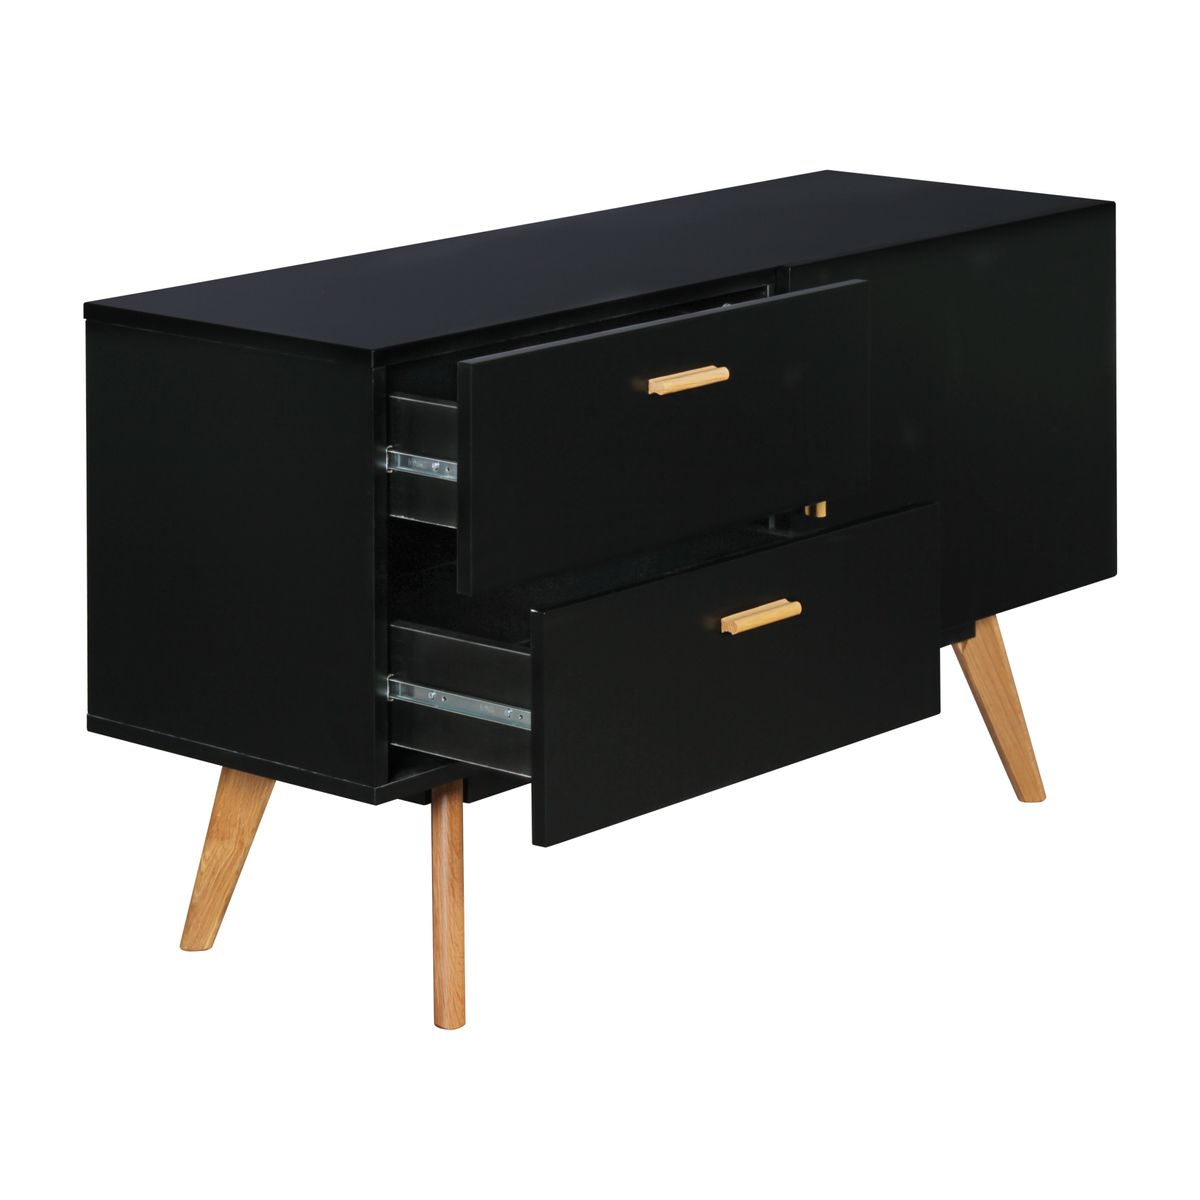 finebuy sideboard scanio matt 120 x 70 cm mit 2 schubladen t r moderne kommode. Black Bedroom Furniture Sets. Home Design Ideas